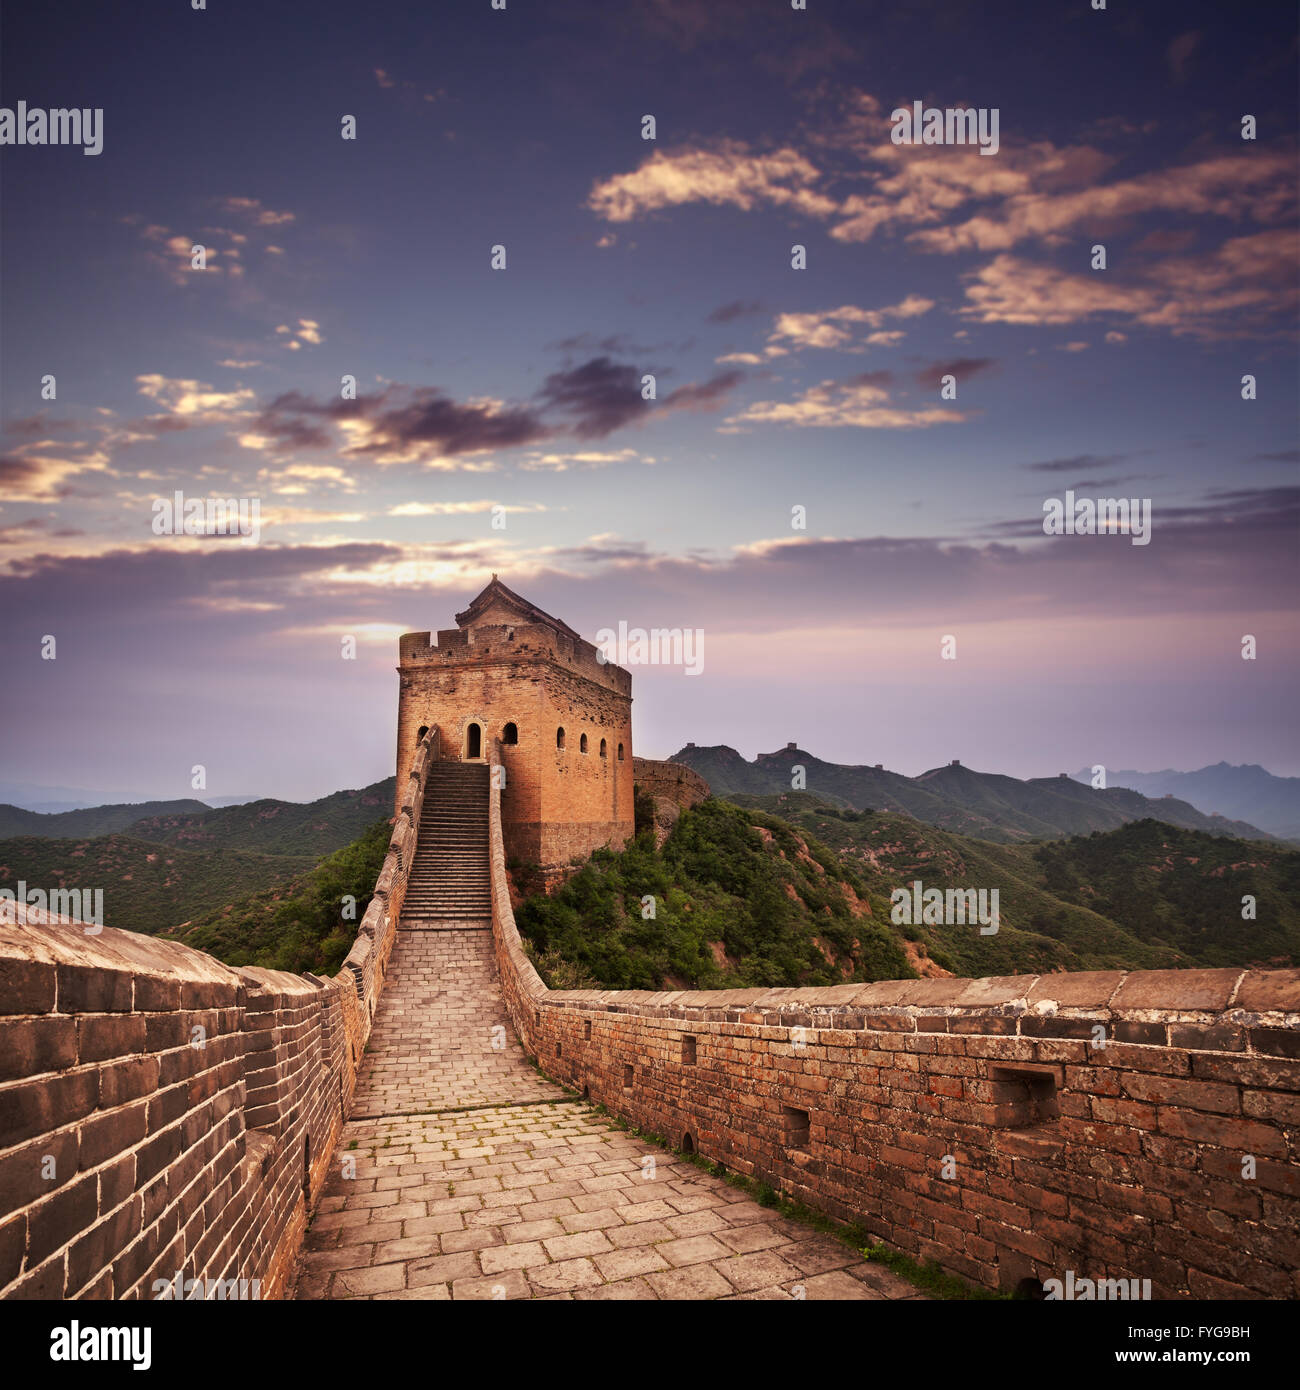 greatwall - Stock Image